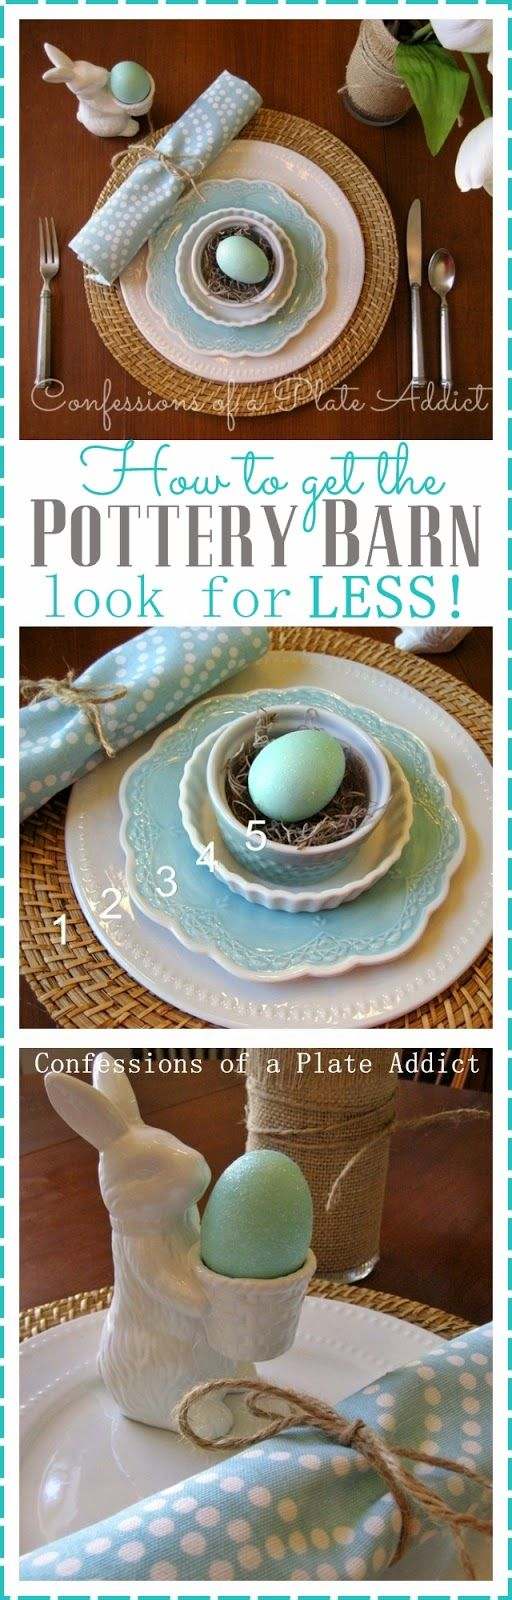 CONFESSIONS OF A PLATE ADDICT How to Get the Pottery Barn Look for Less!